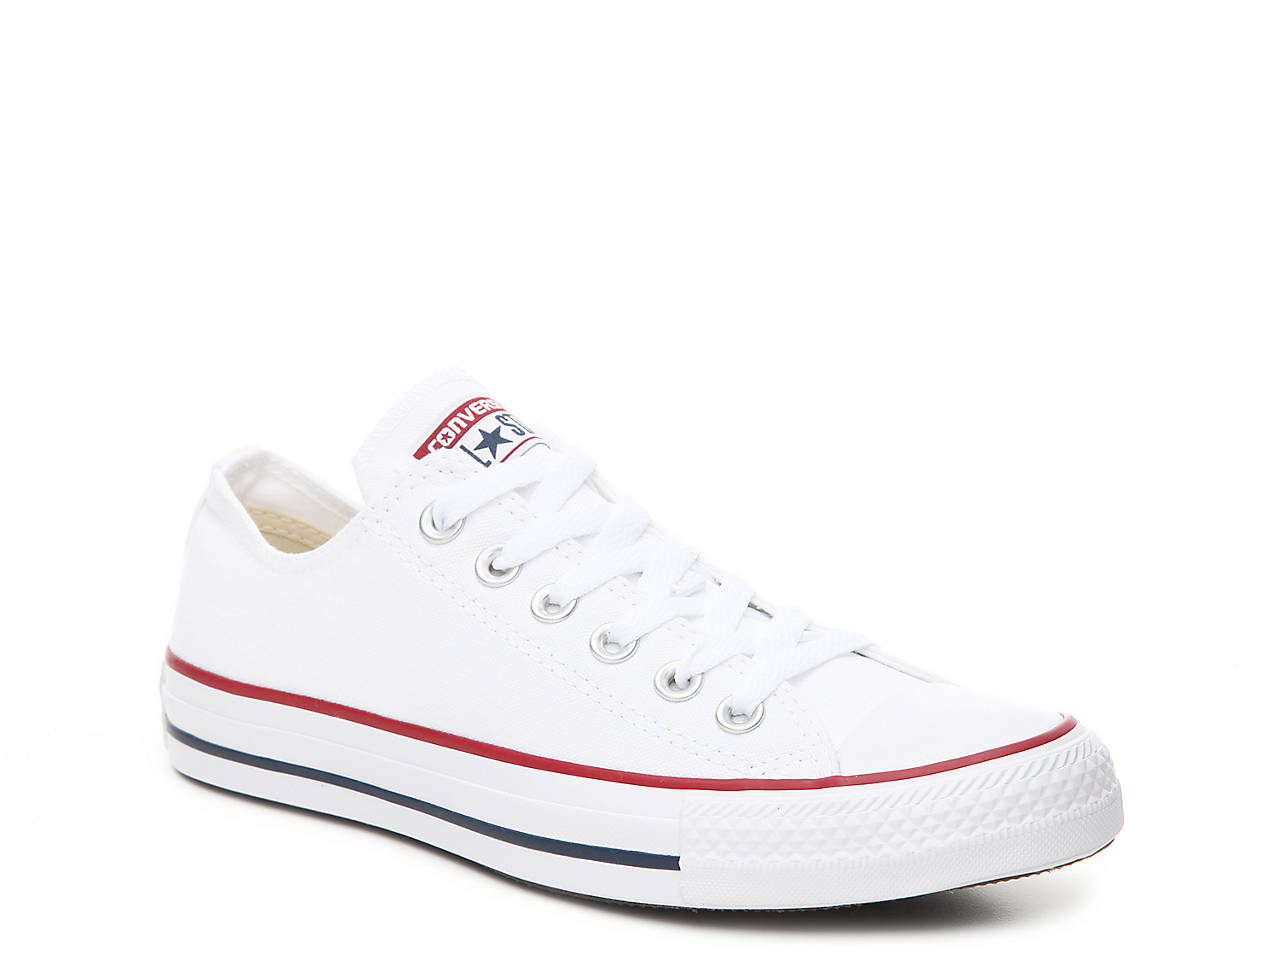 10cdb7364a31 Converse Chuck Taylor All Star Sneaker - Women s Women s Shoes